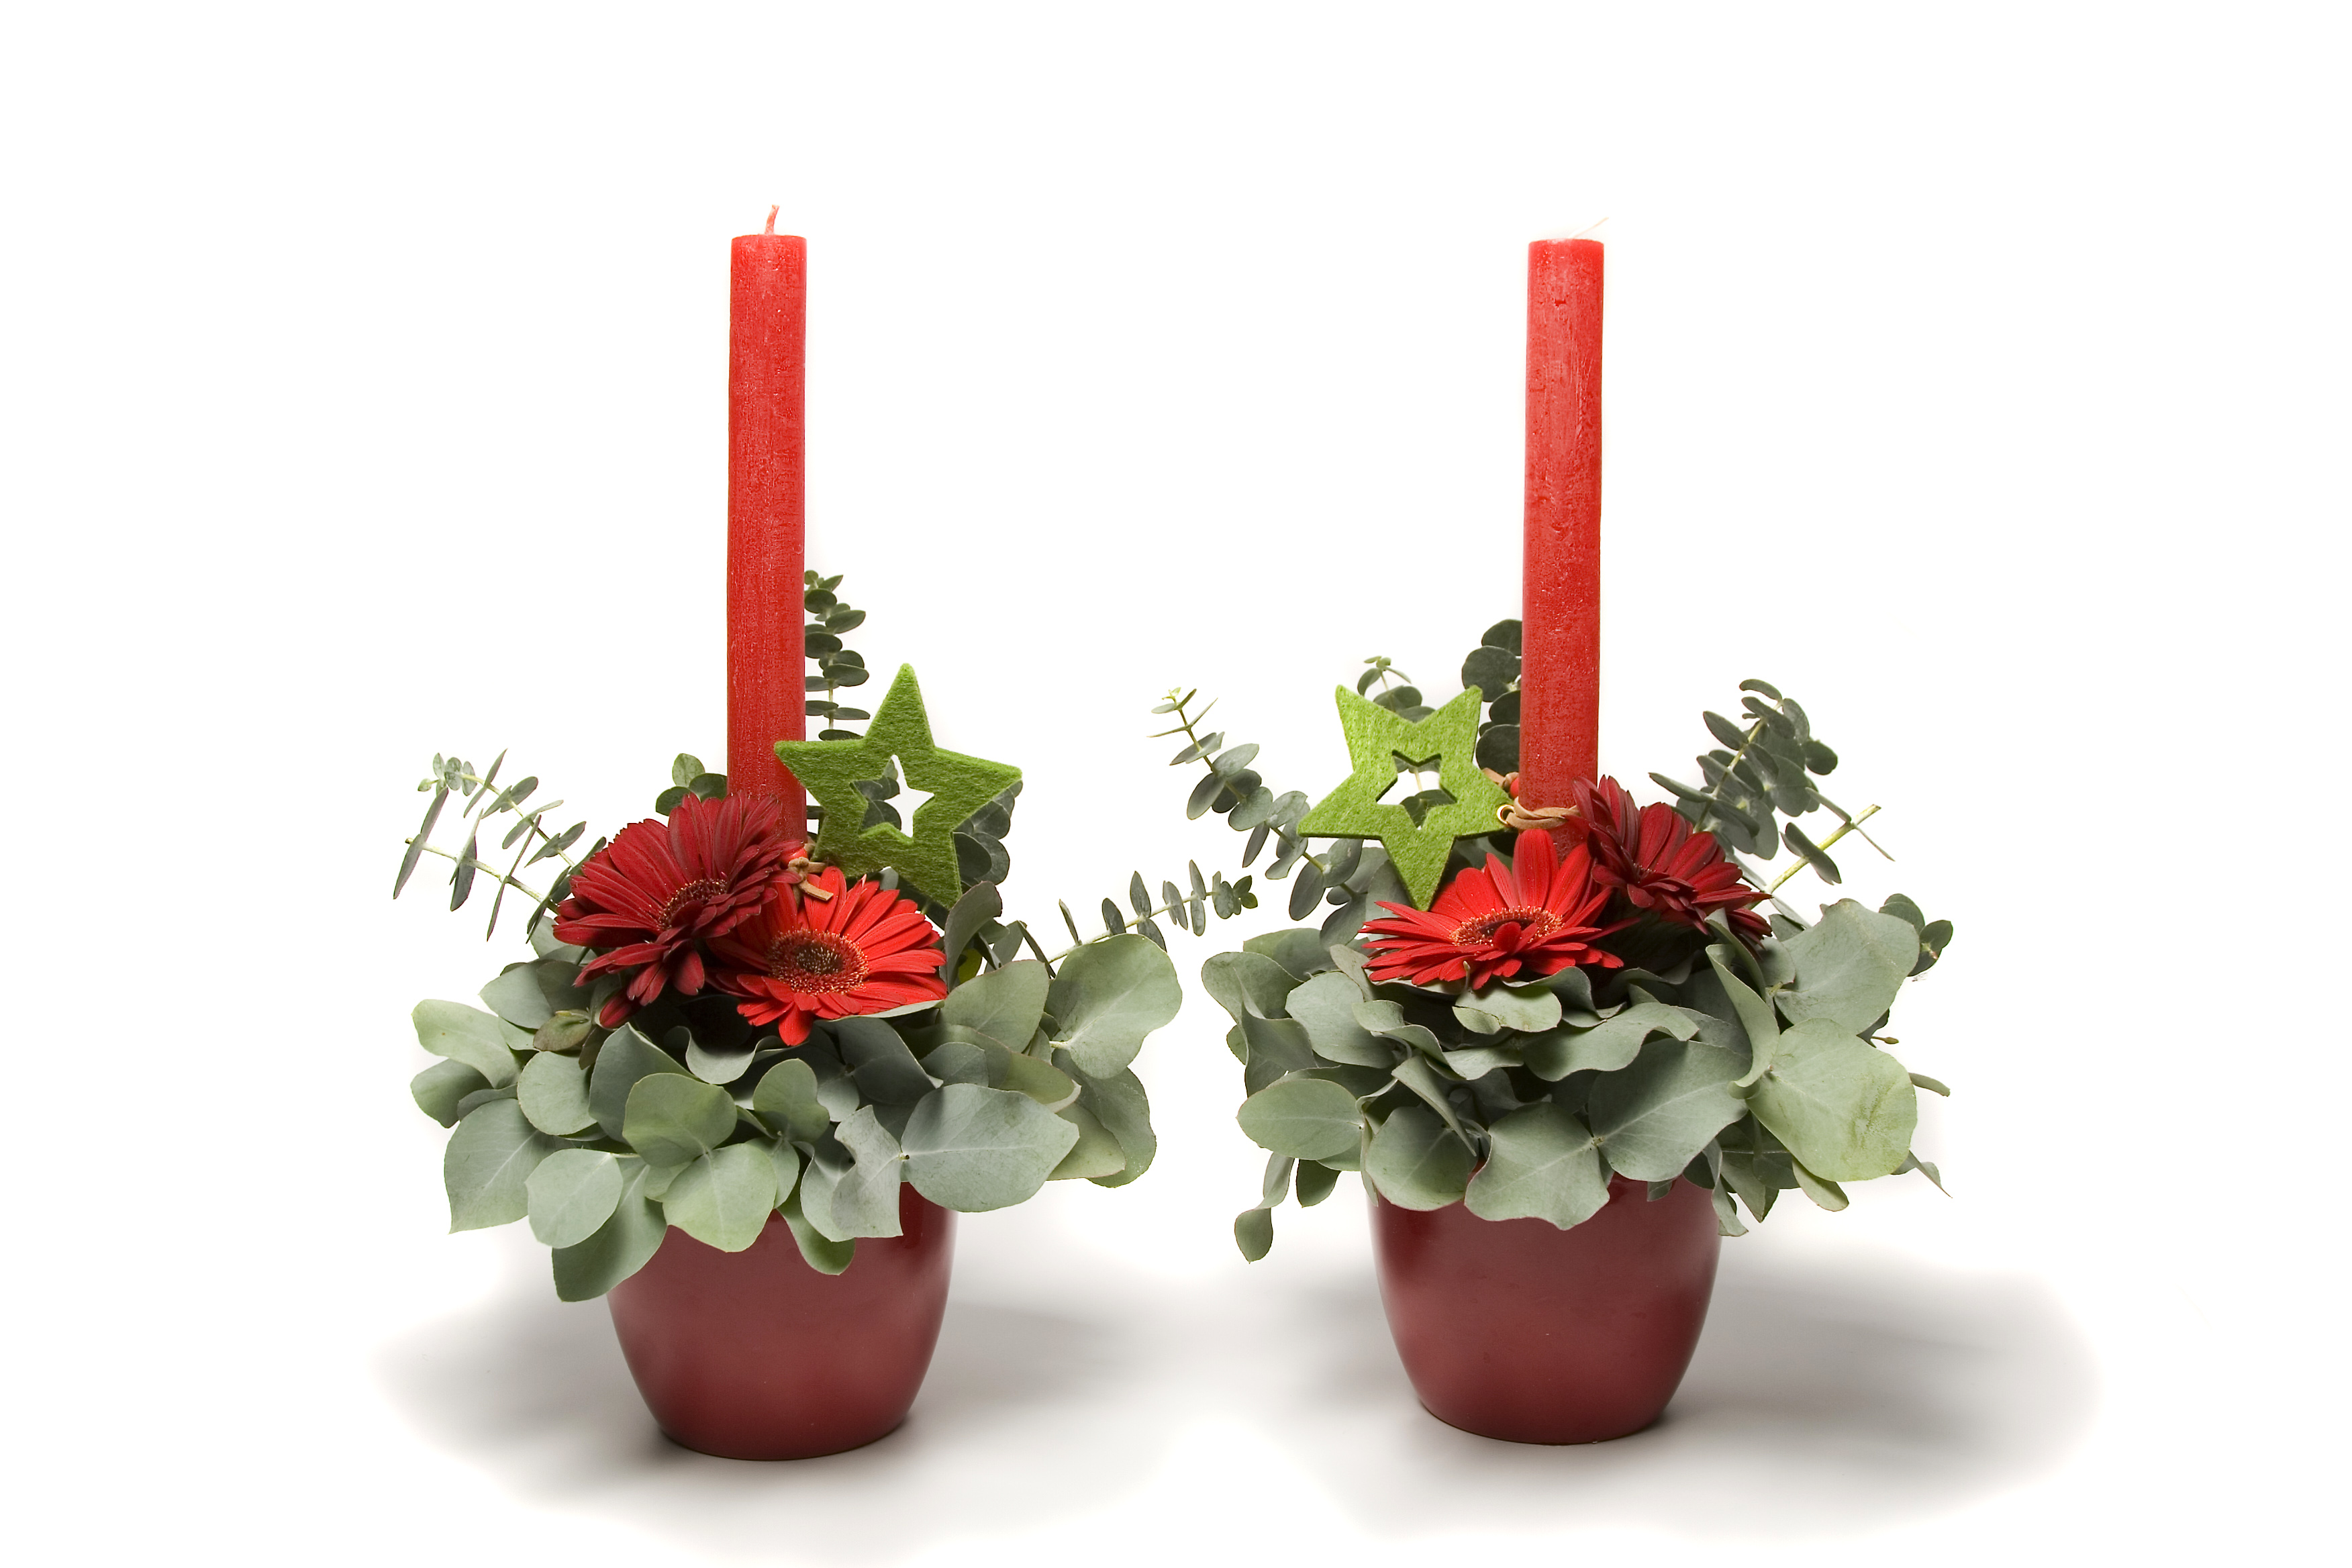 Christmas Flower Arrangements.Christmas Arrangements With Fewer Flowers Flower Press